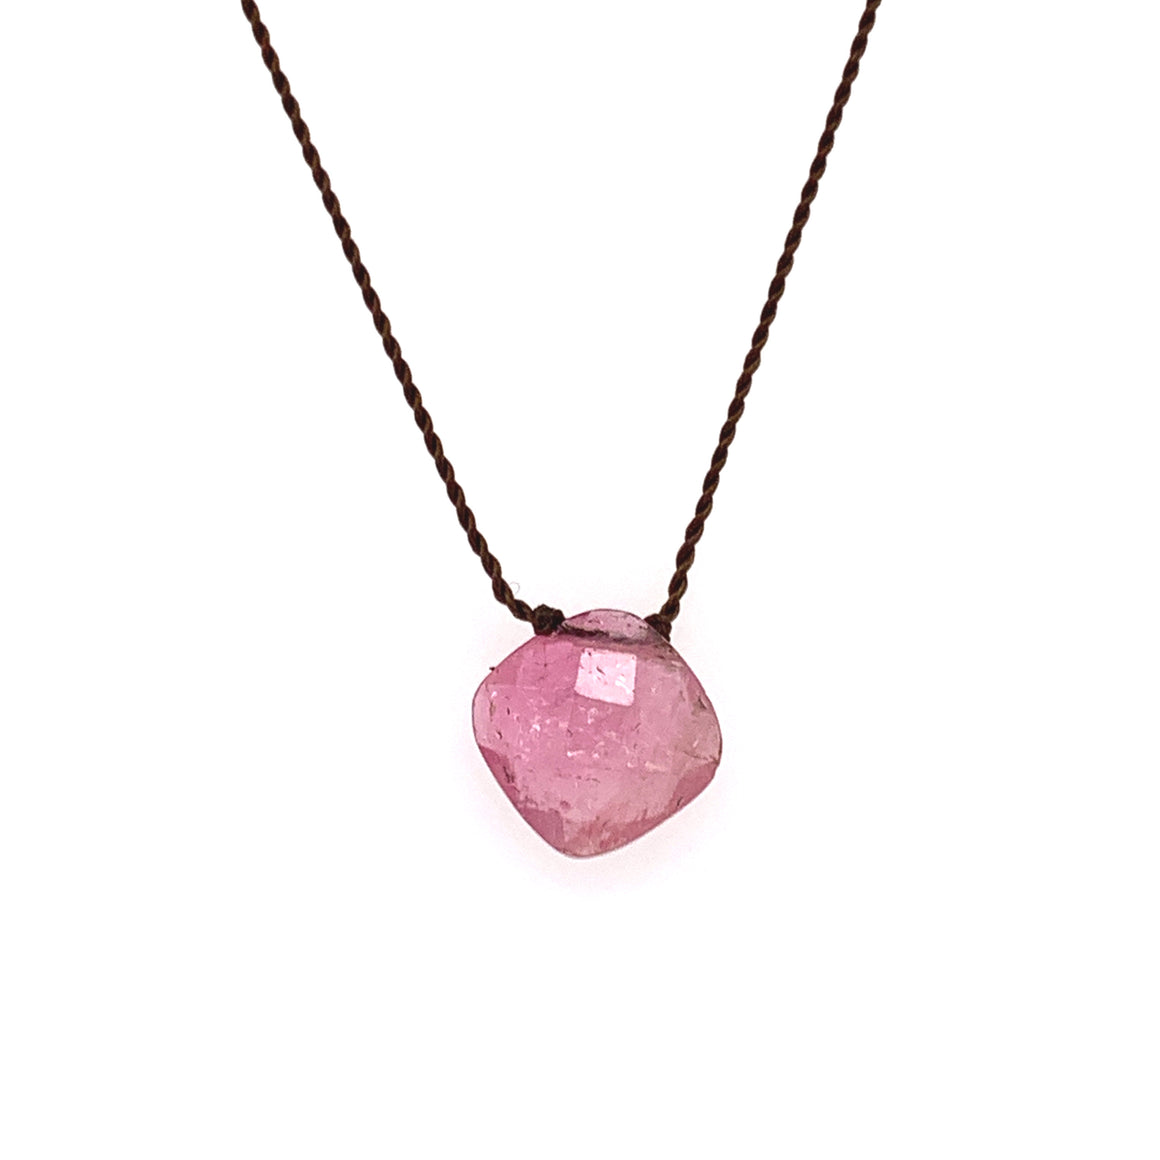 Faceted Droplet Necklace - Pink Tourmaline